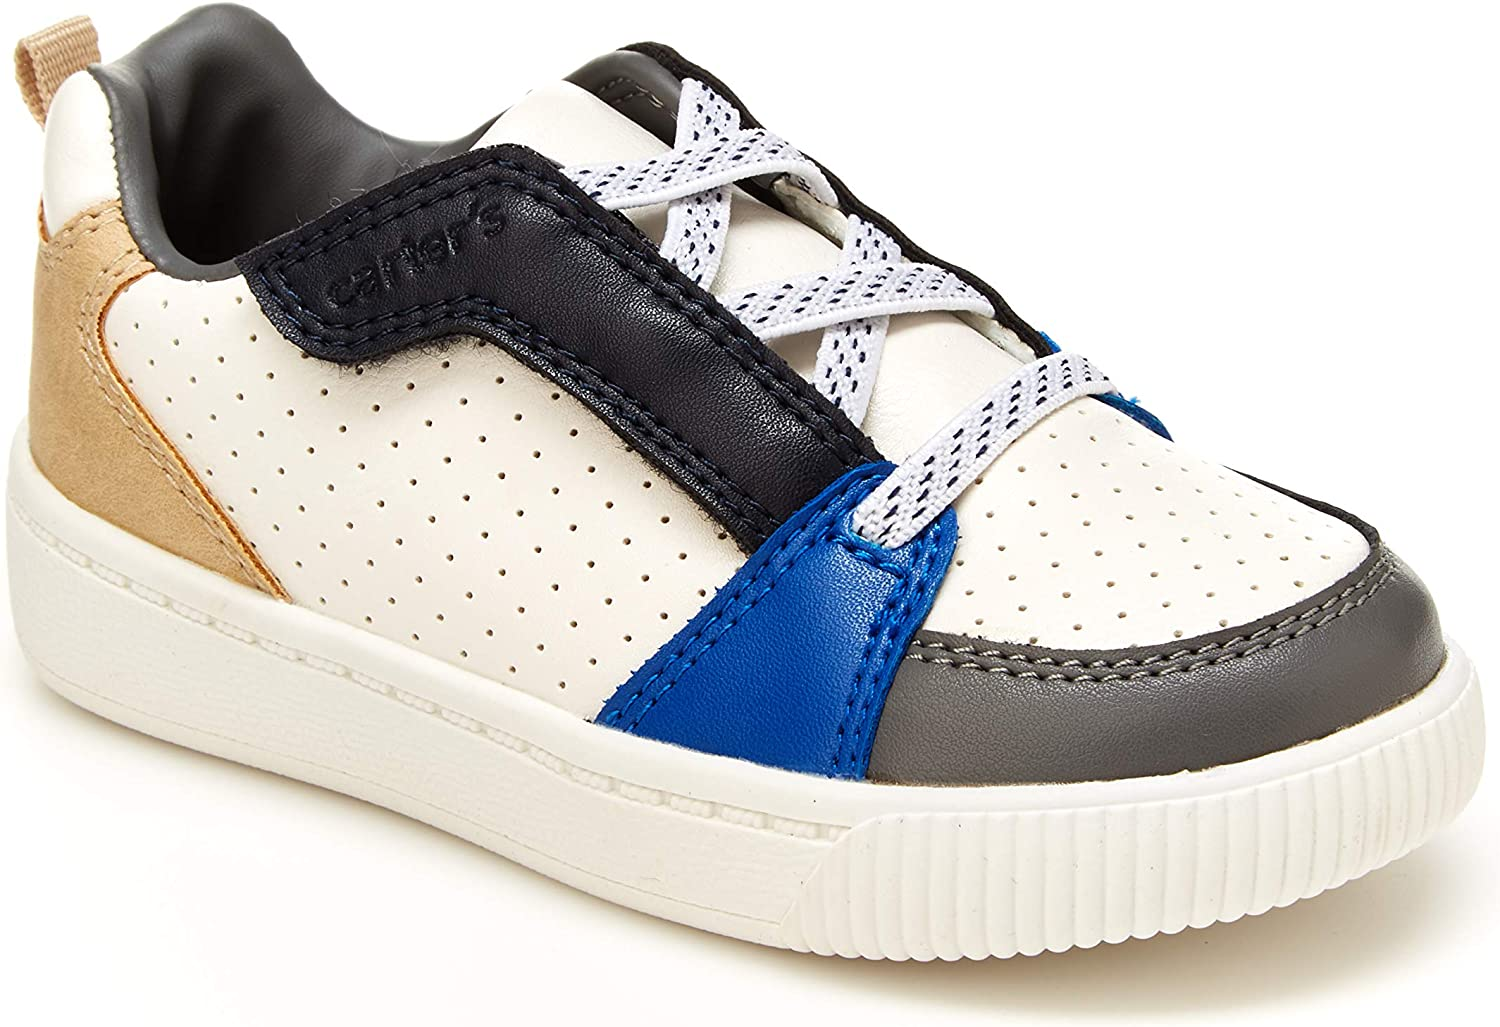 Carter's Unisex-Child Entry Max 42% OFF Sneaker Sales